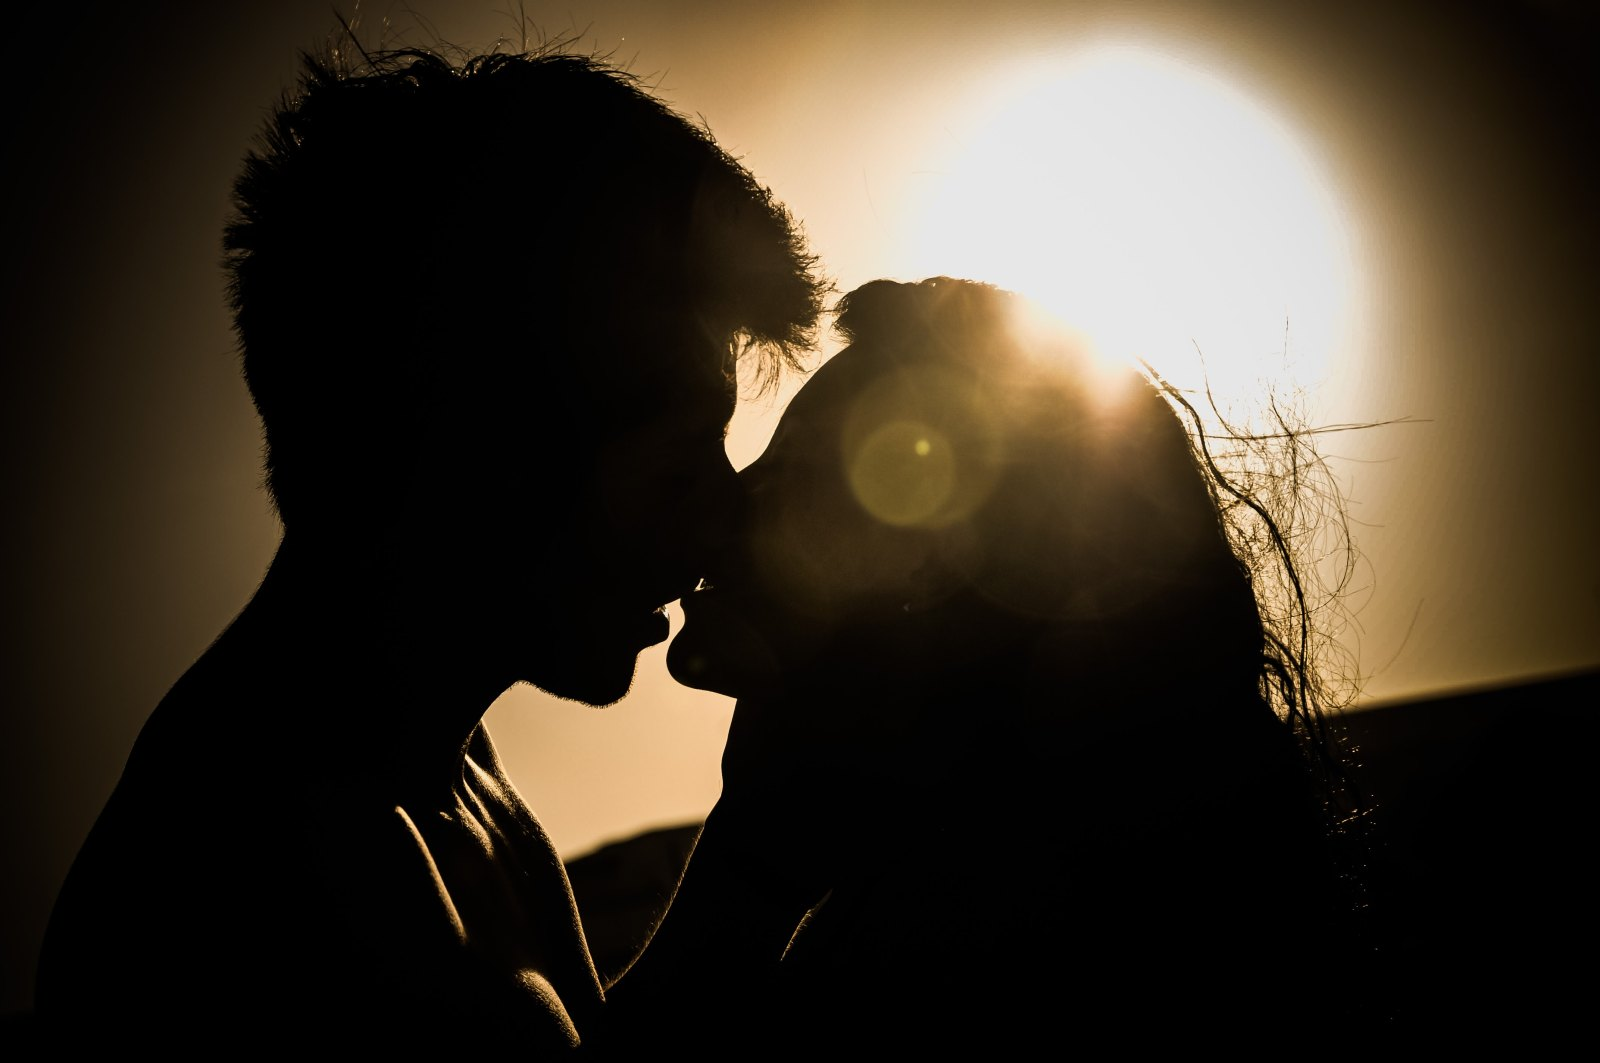 fallen in love, 5 Signs You've Fallen In Love With The Wrong Person